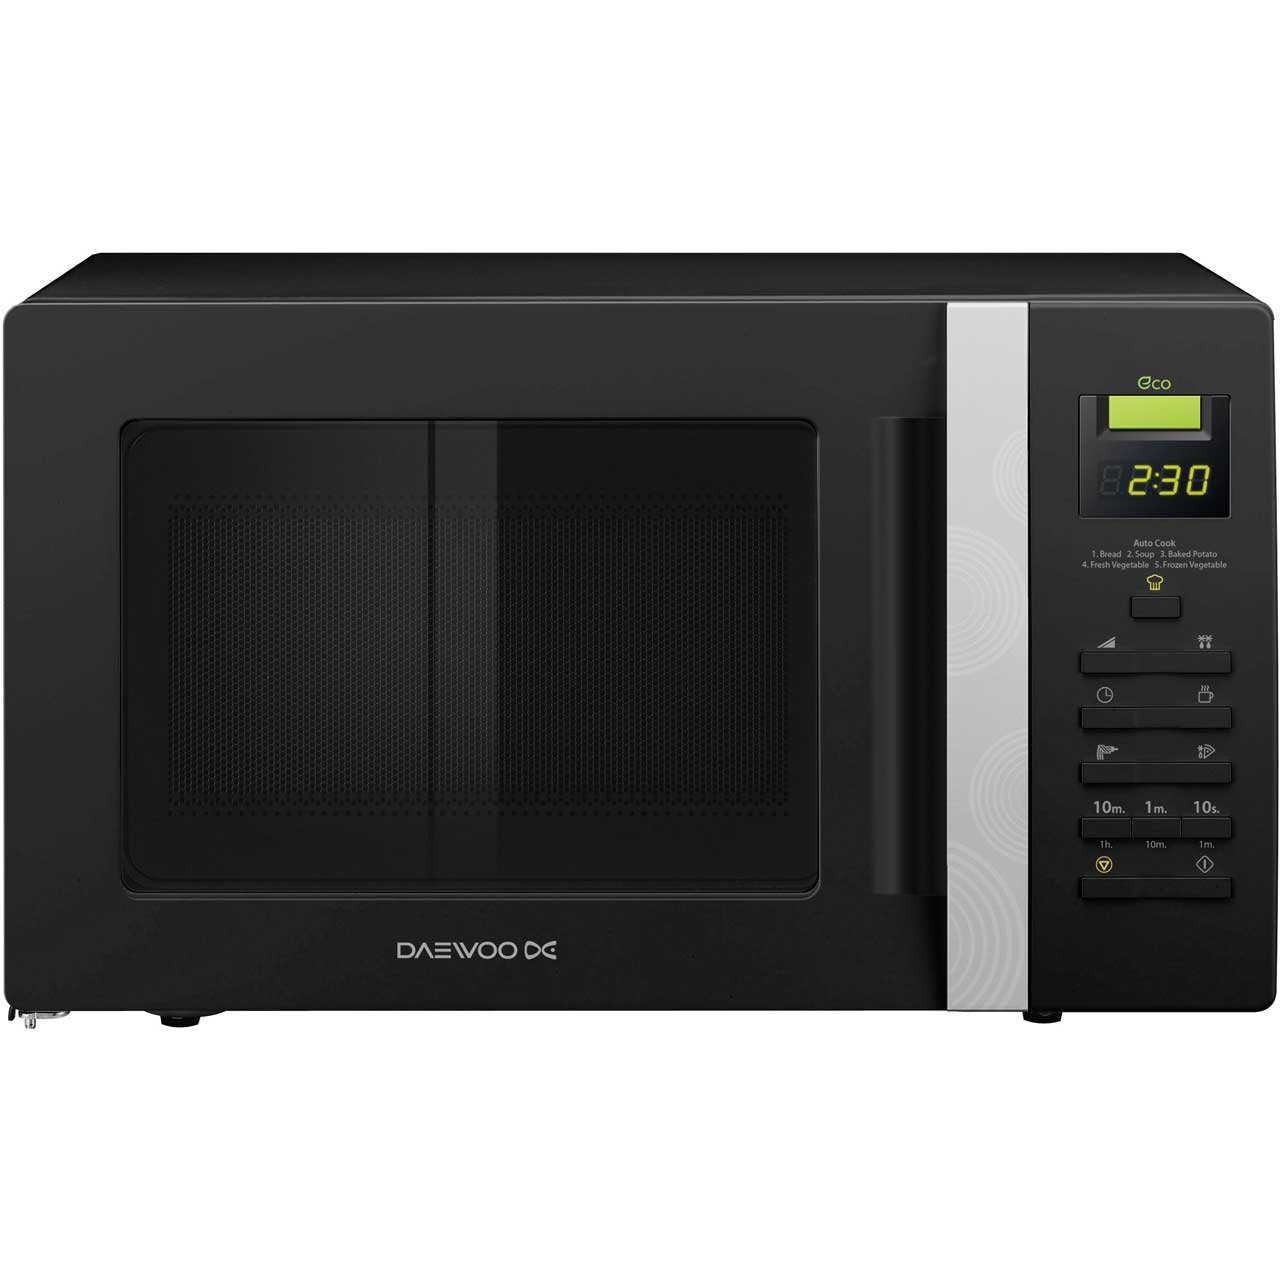 Amazon.com: Daewoo Digital Eco Horno de microondas 20 L ...